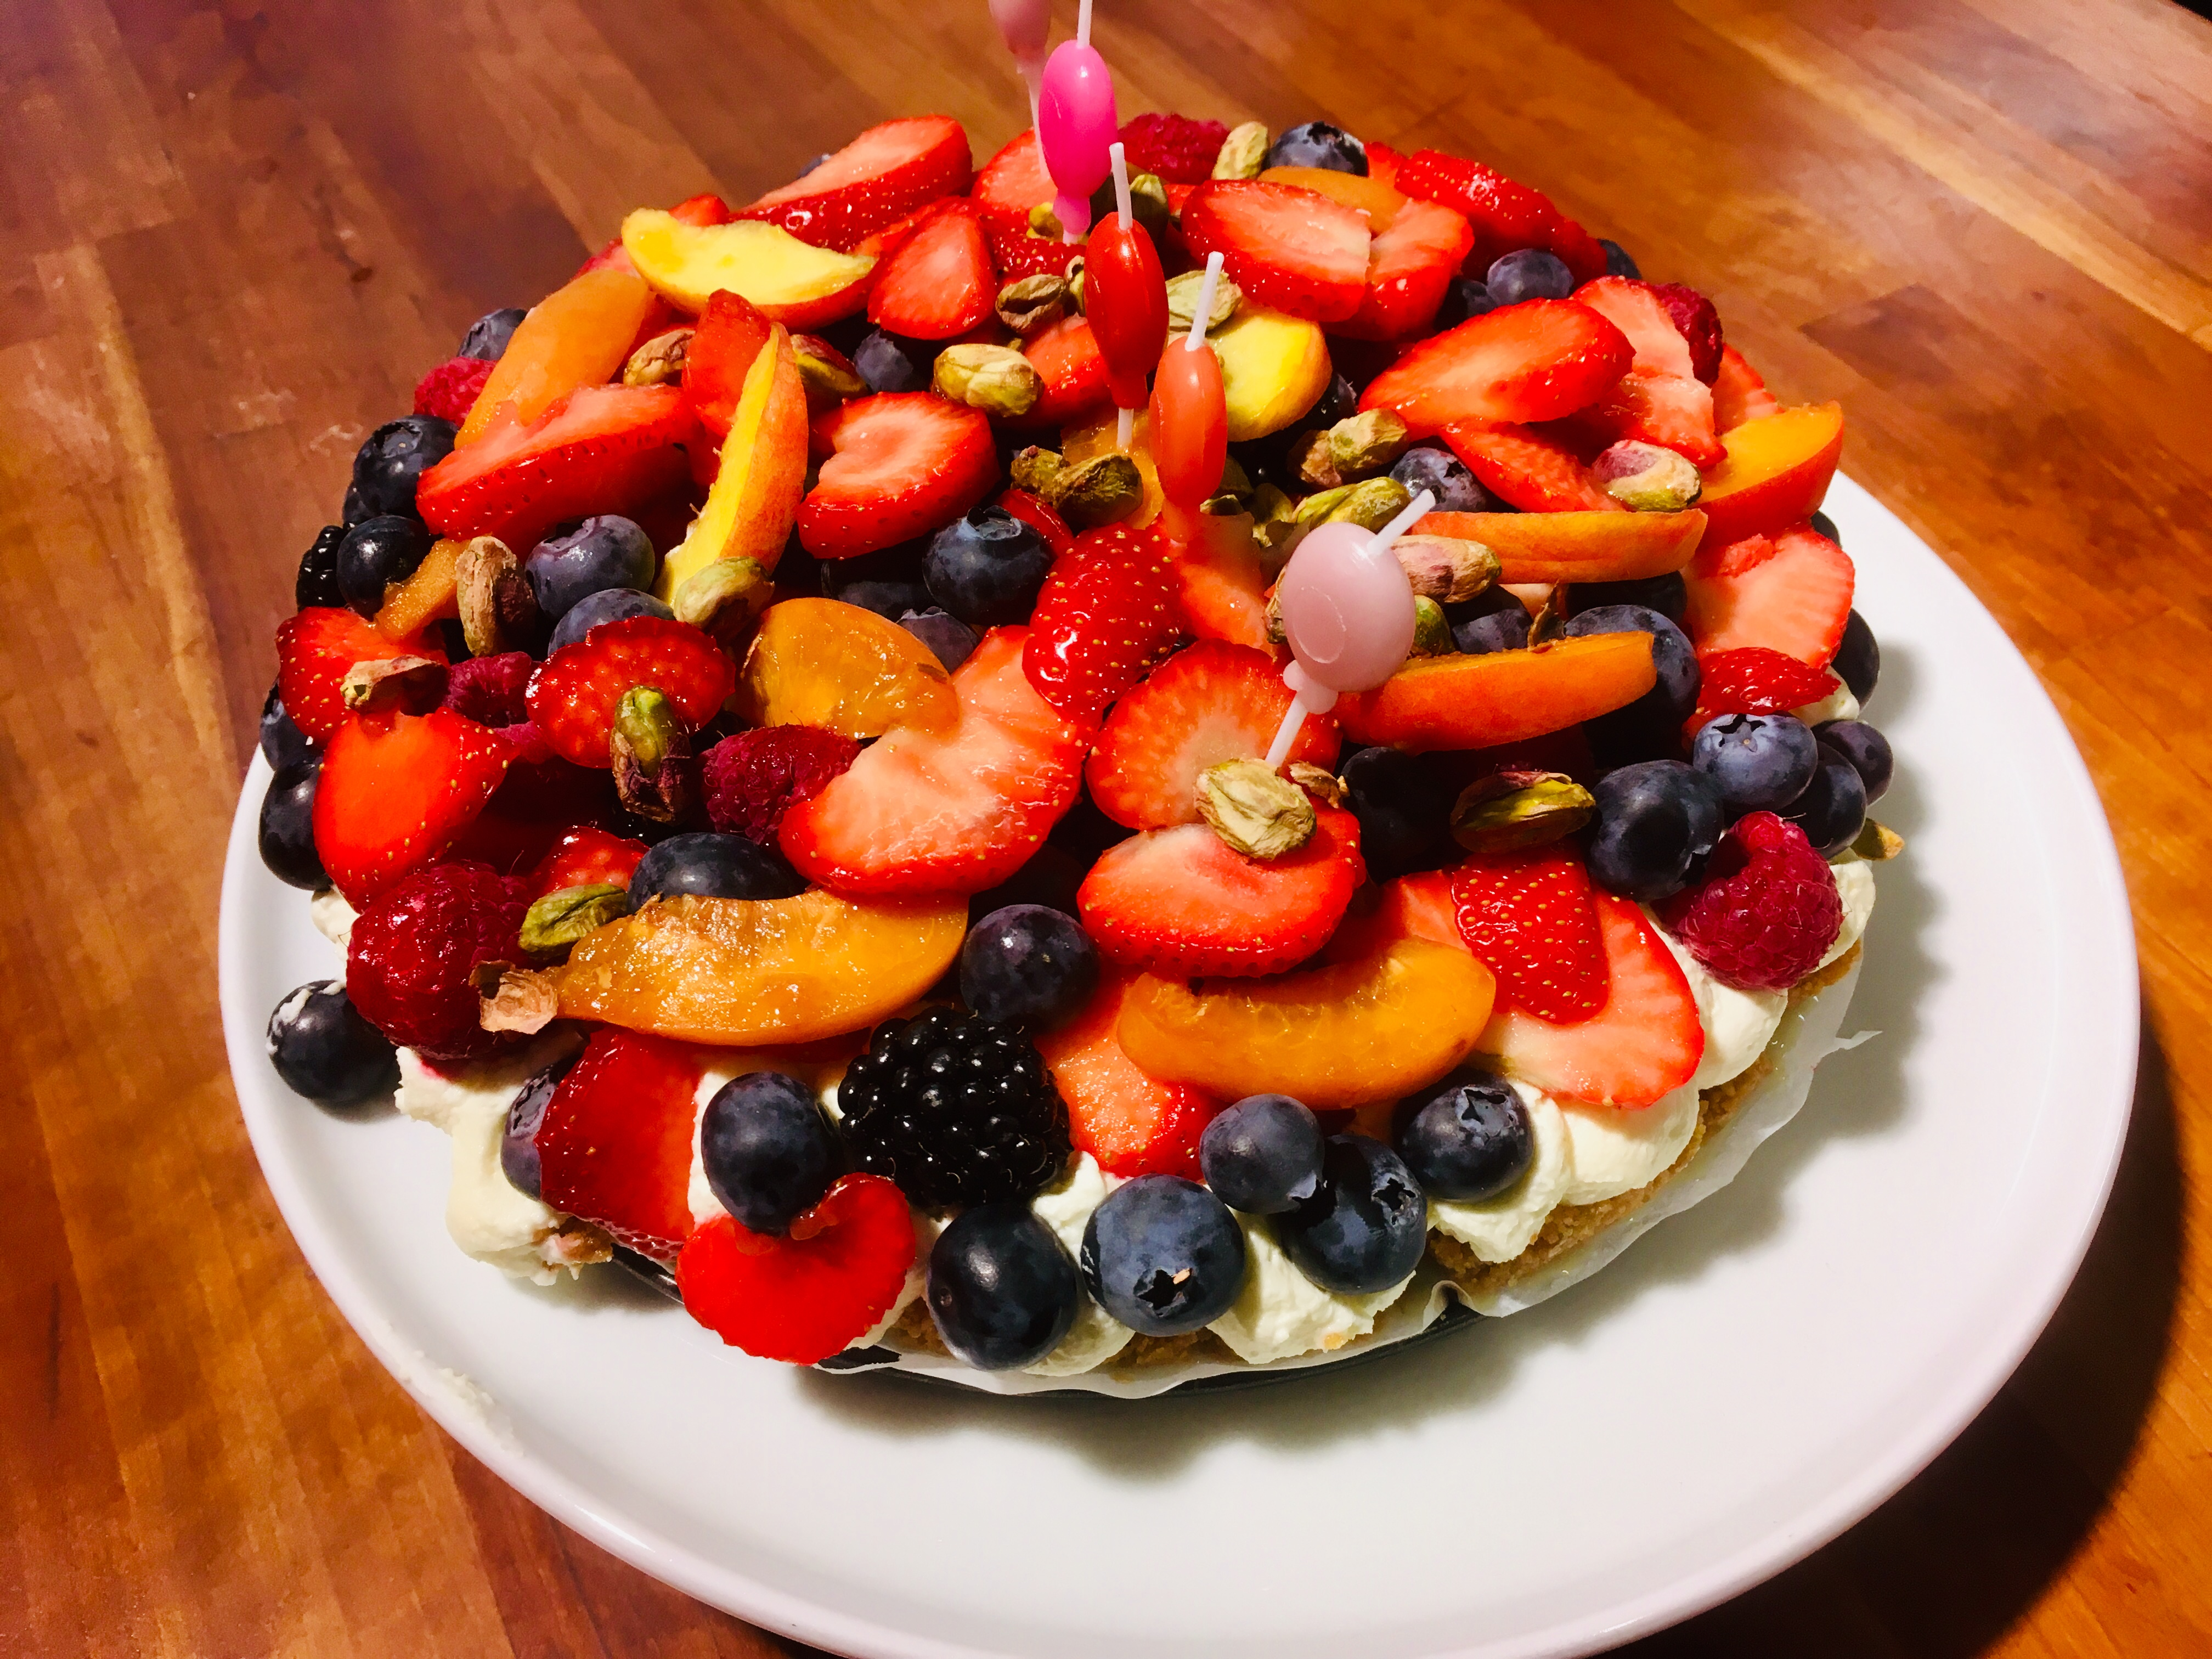 CROSTATA With Summer Fruits